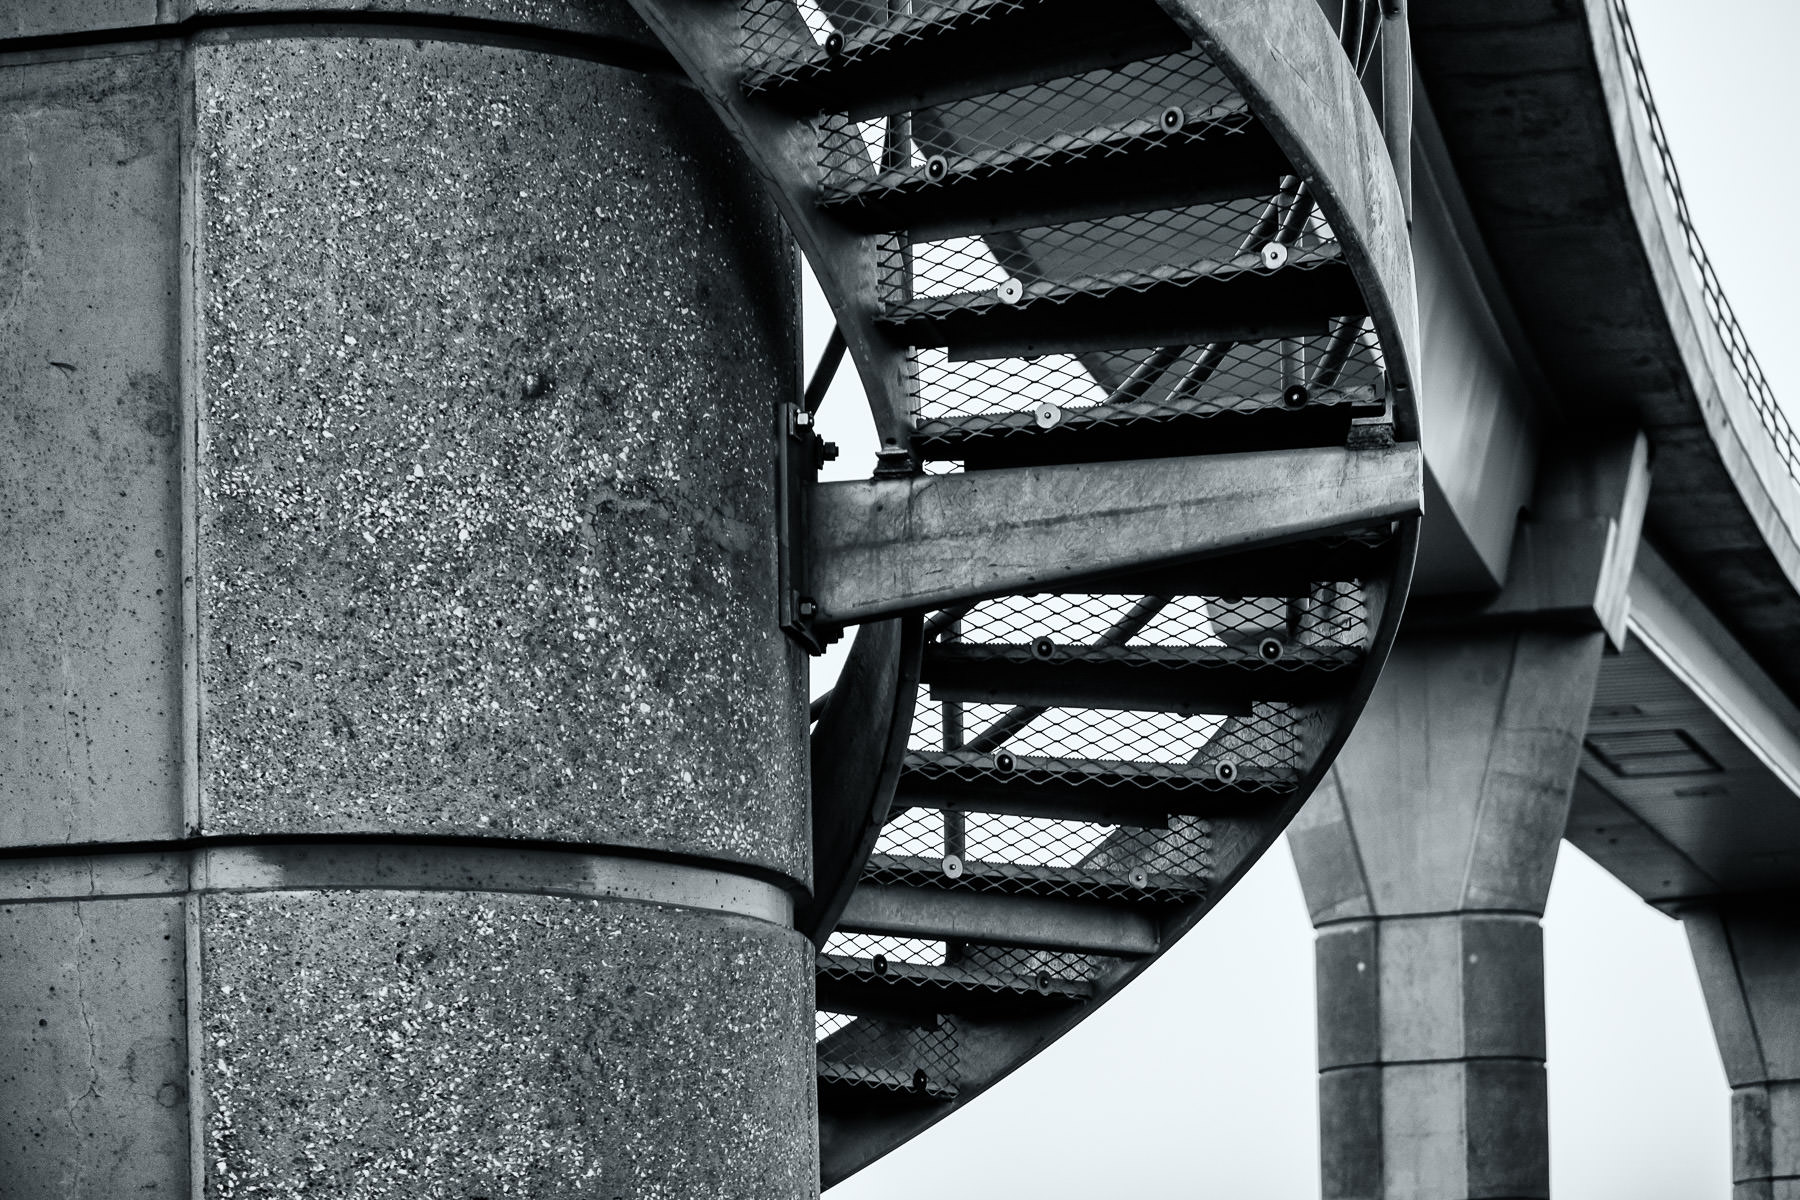 A maintenance stairway wraps around a support column for the Skylink train at DFW International Airport, Texas.